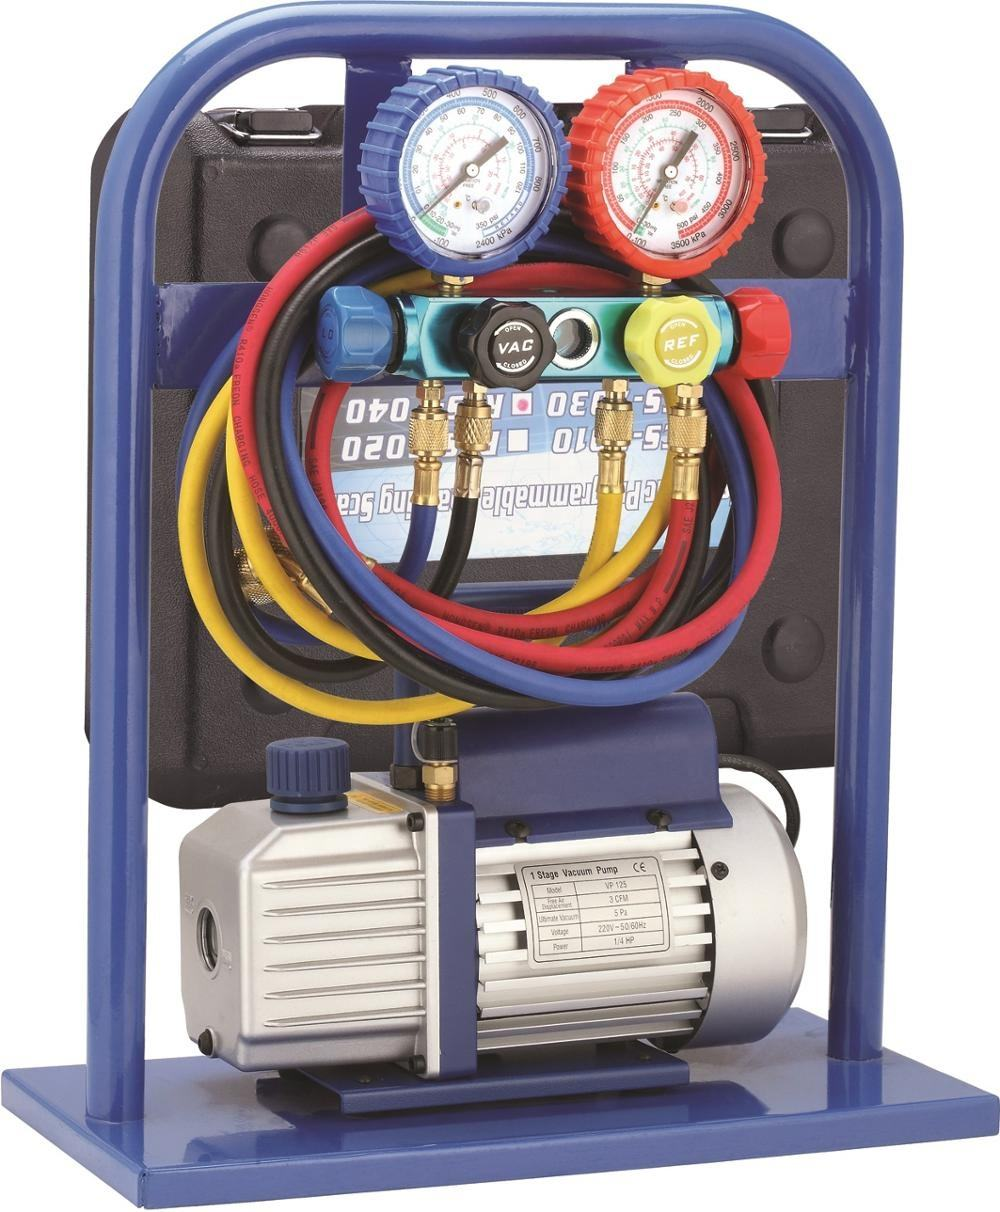 Good quality refrigeration Services Tool kit